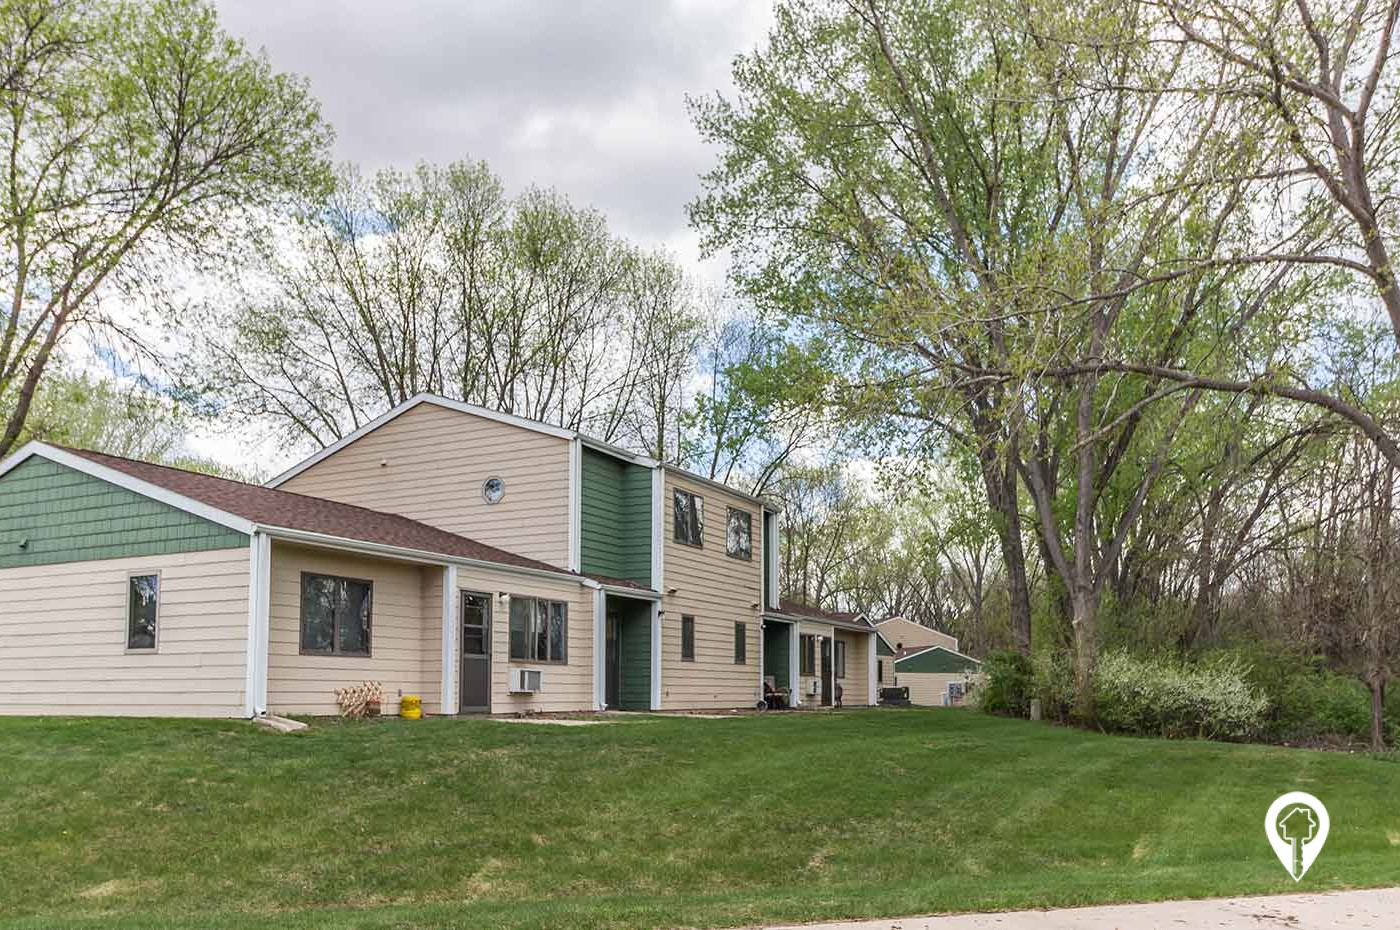 Green Meadows Townhomes